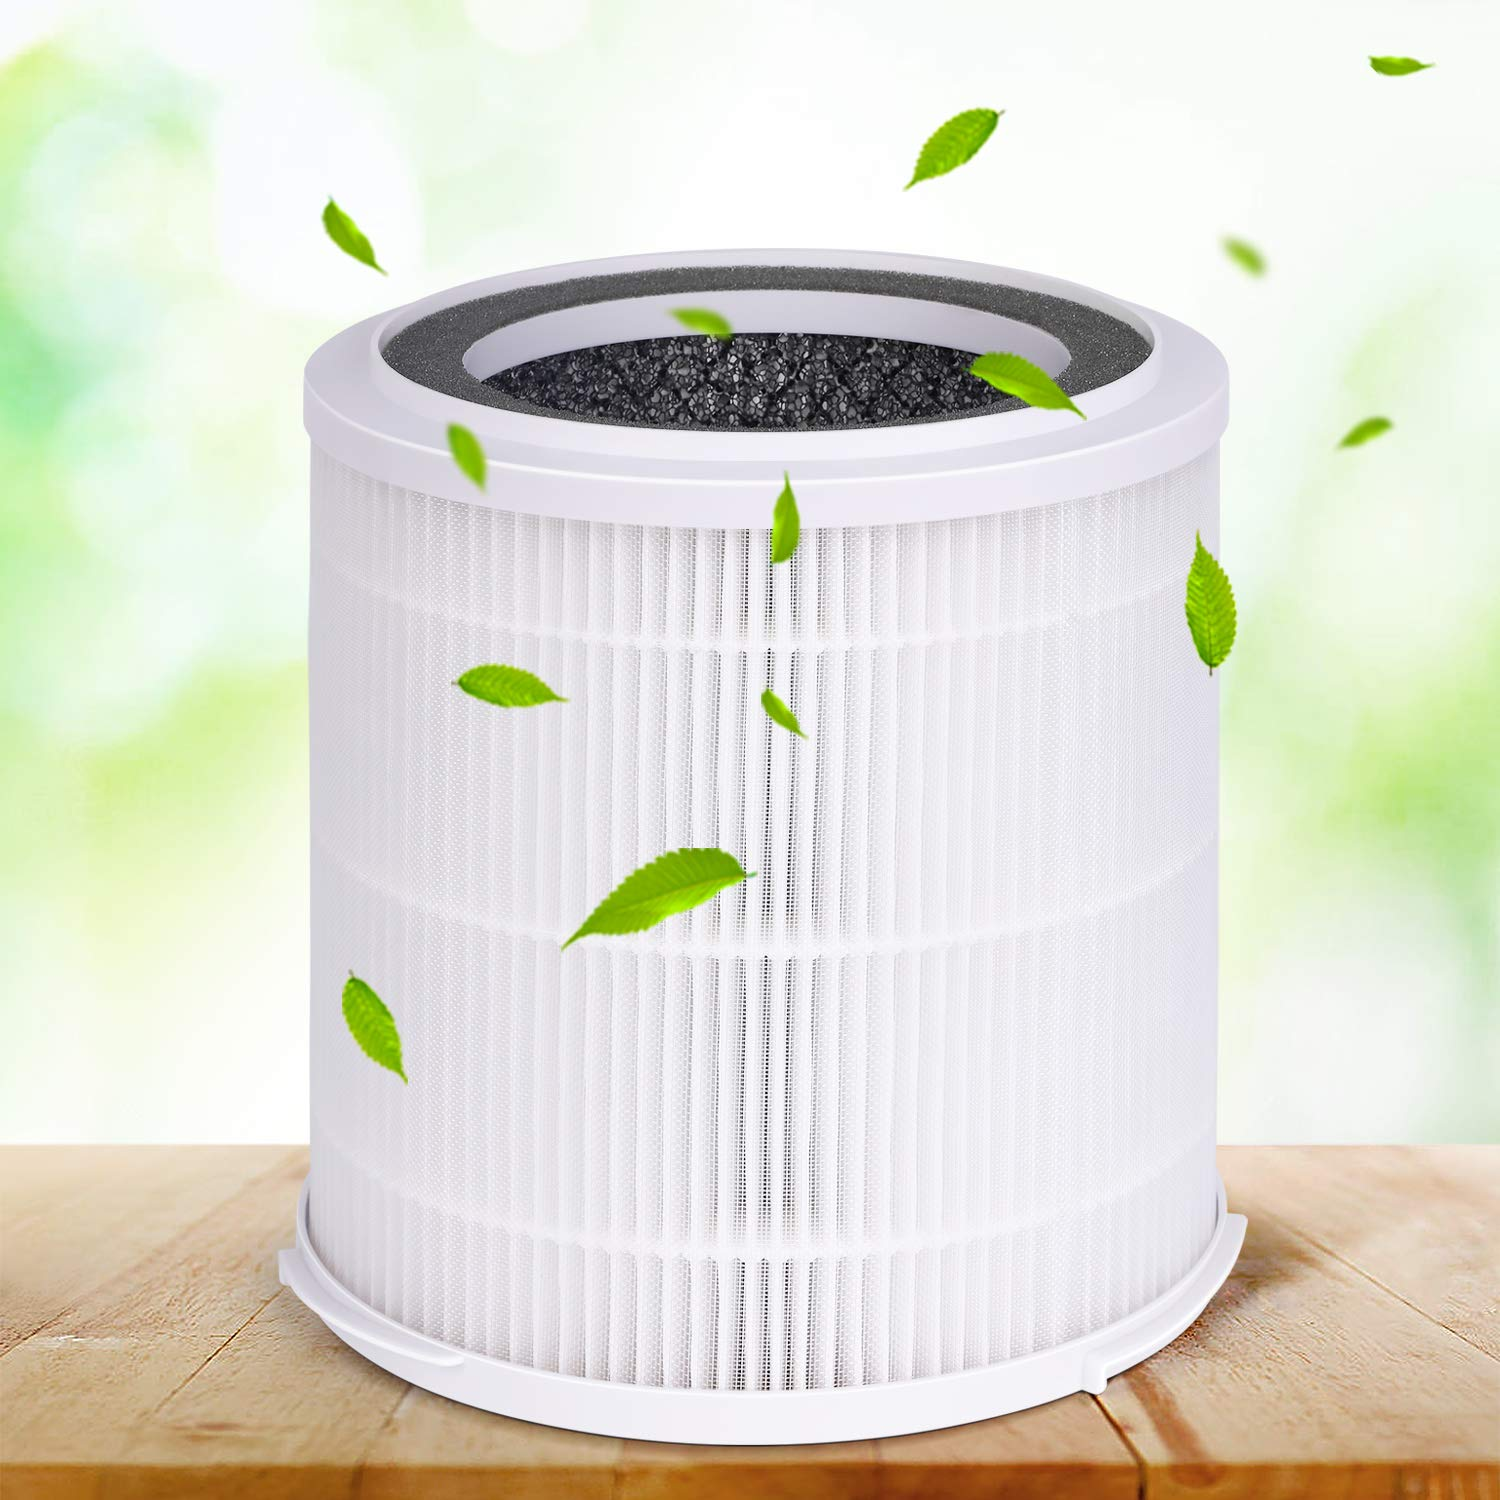 INTEY Hepa Air Purifier - No Ozone,True HEPA &Active Carbon Filters, 8H Timer, Air Purifiers Allergies/Smoke - Removes 99.97% Dust, Pollen, Pet Dander (322 sq.ft/ 30 m², CADR Rated 140+)